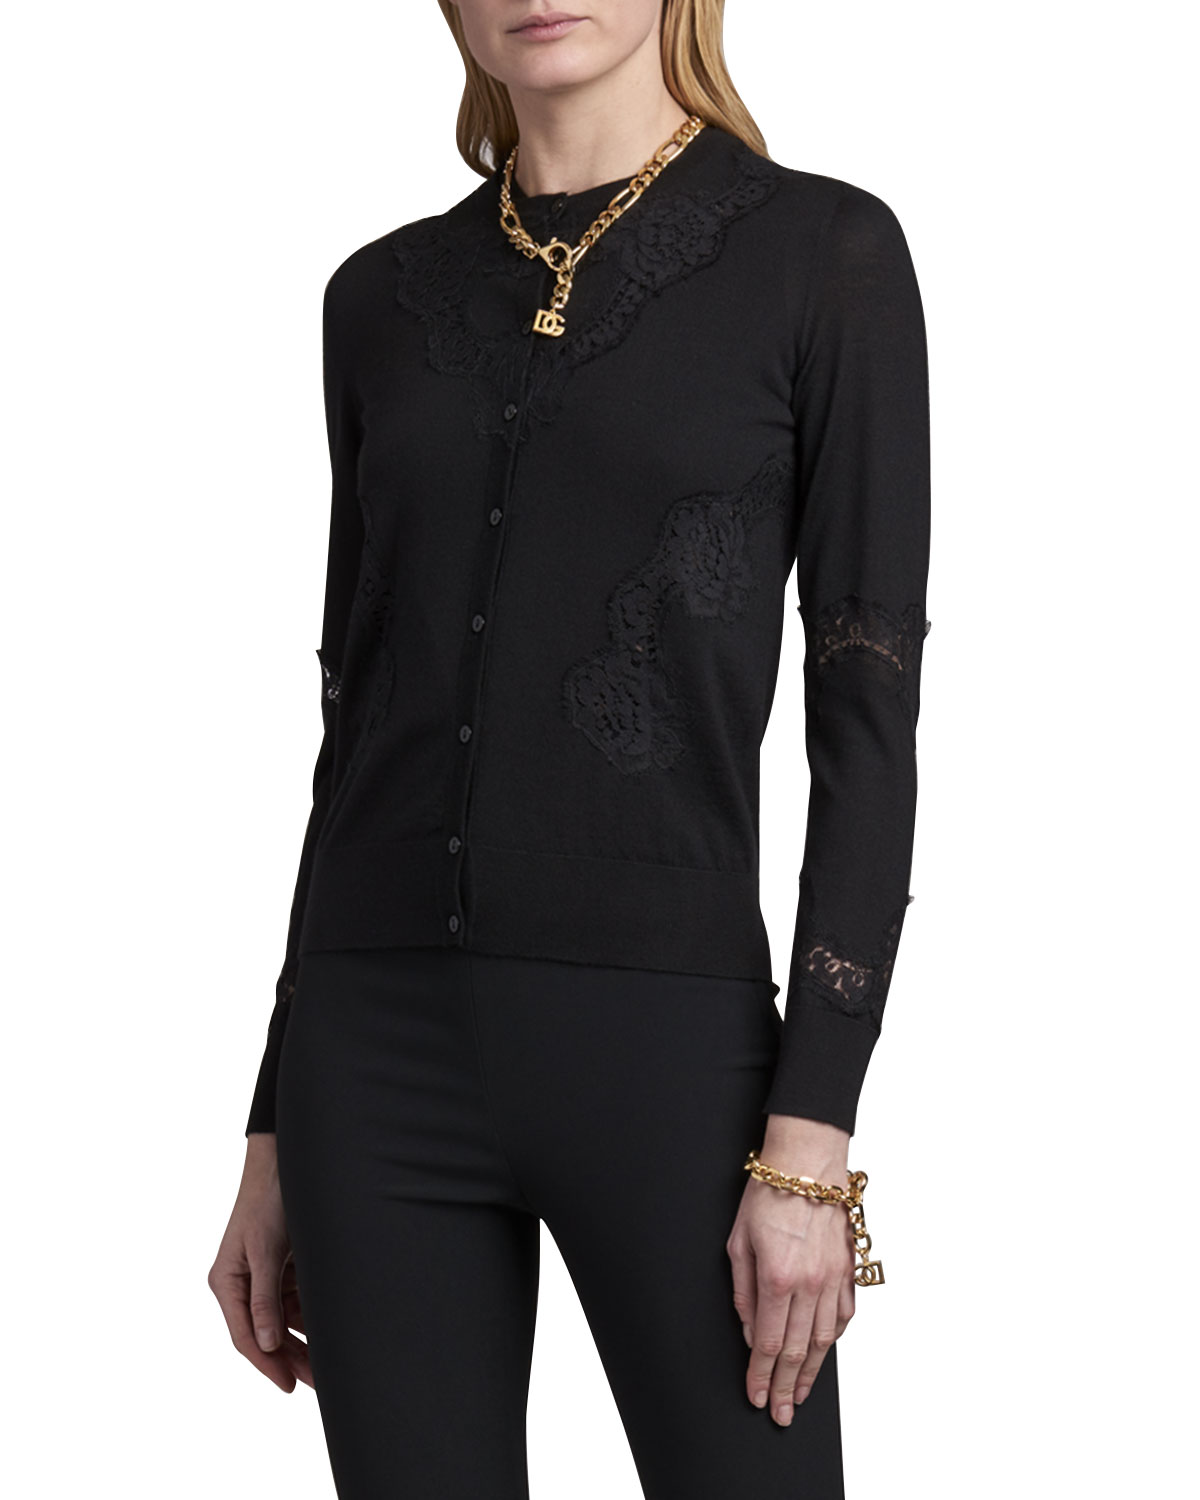 Dolce & Gabbana LONG-SLEEVE LACE BUTTON-FRONT CARDIGAN